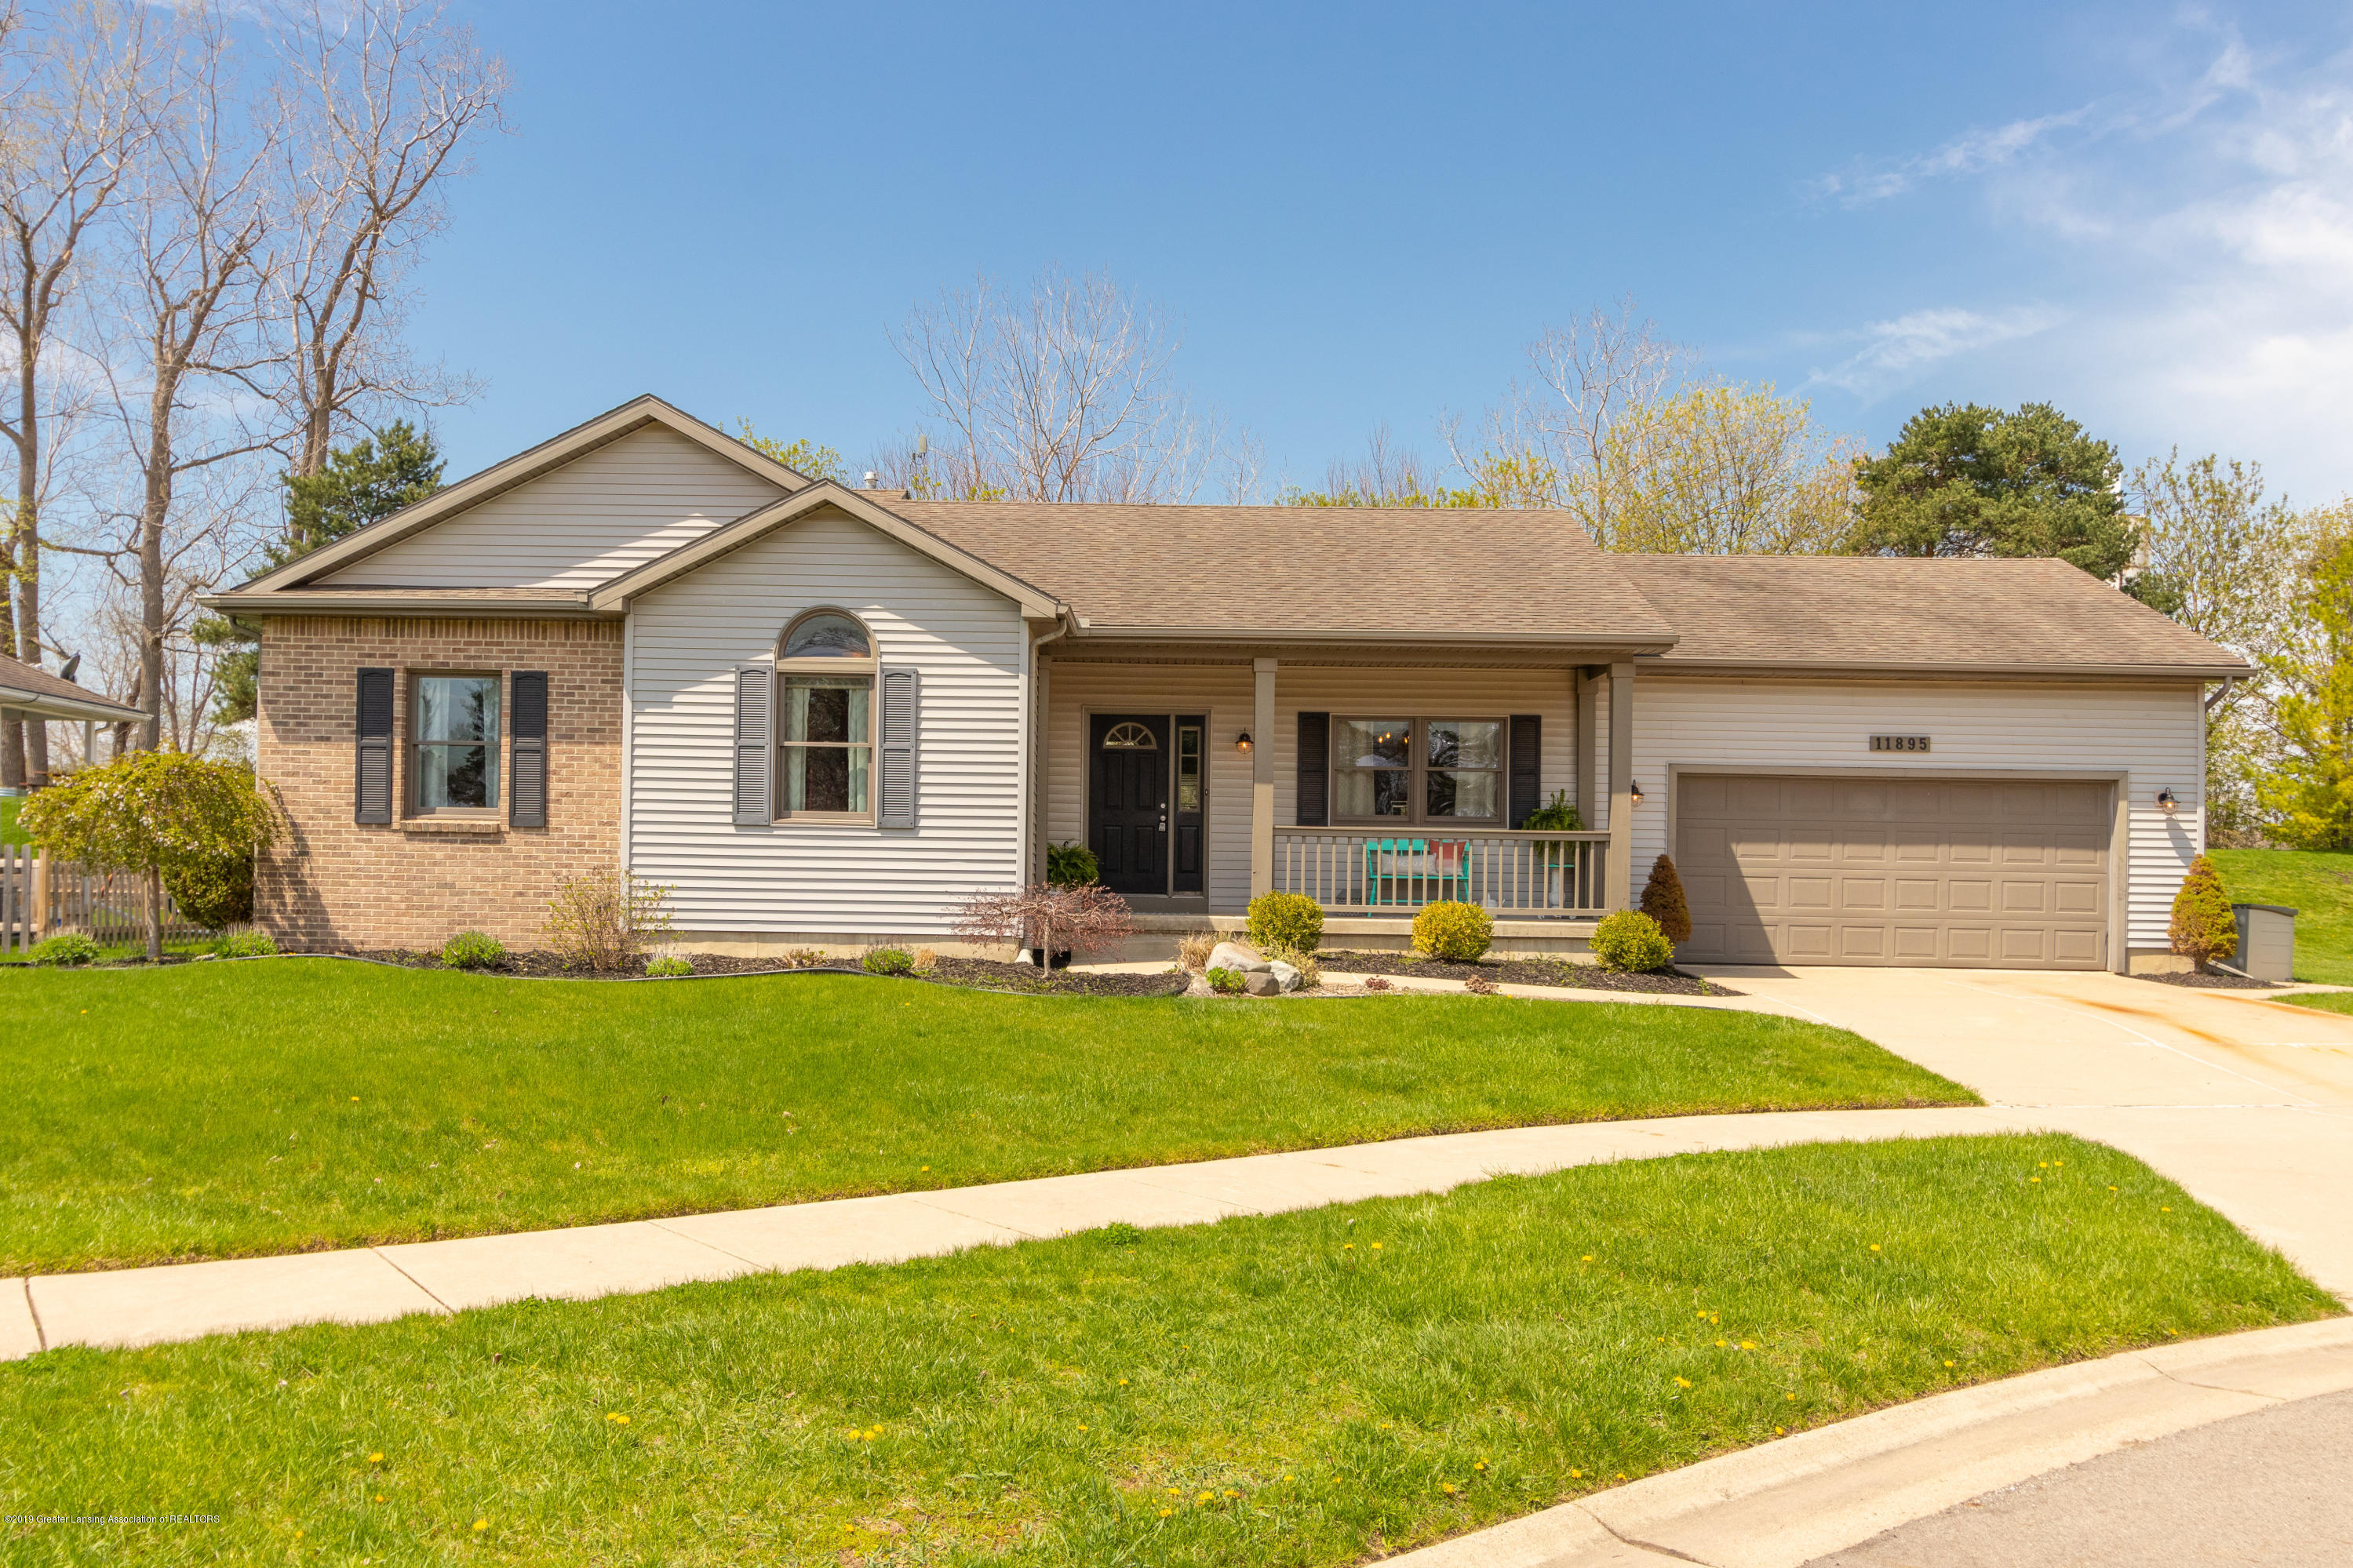 11895 Shady Pines Dr - Final-9 - 1